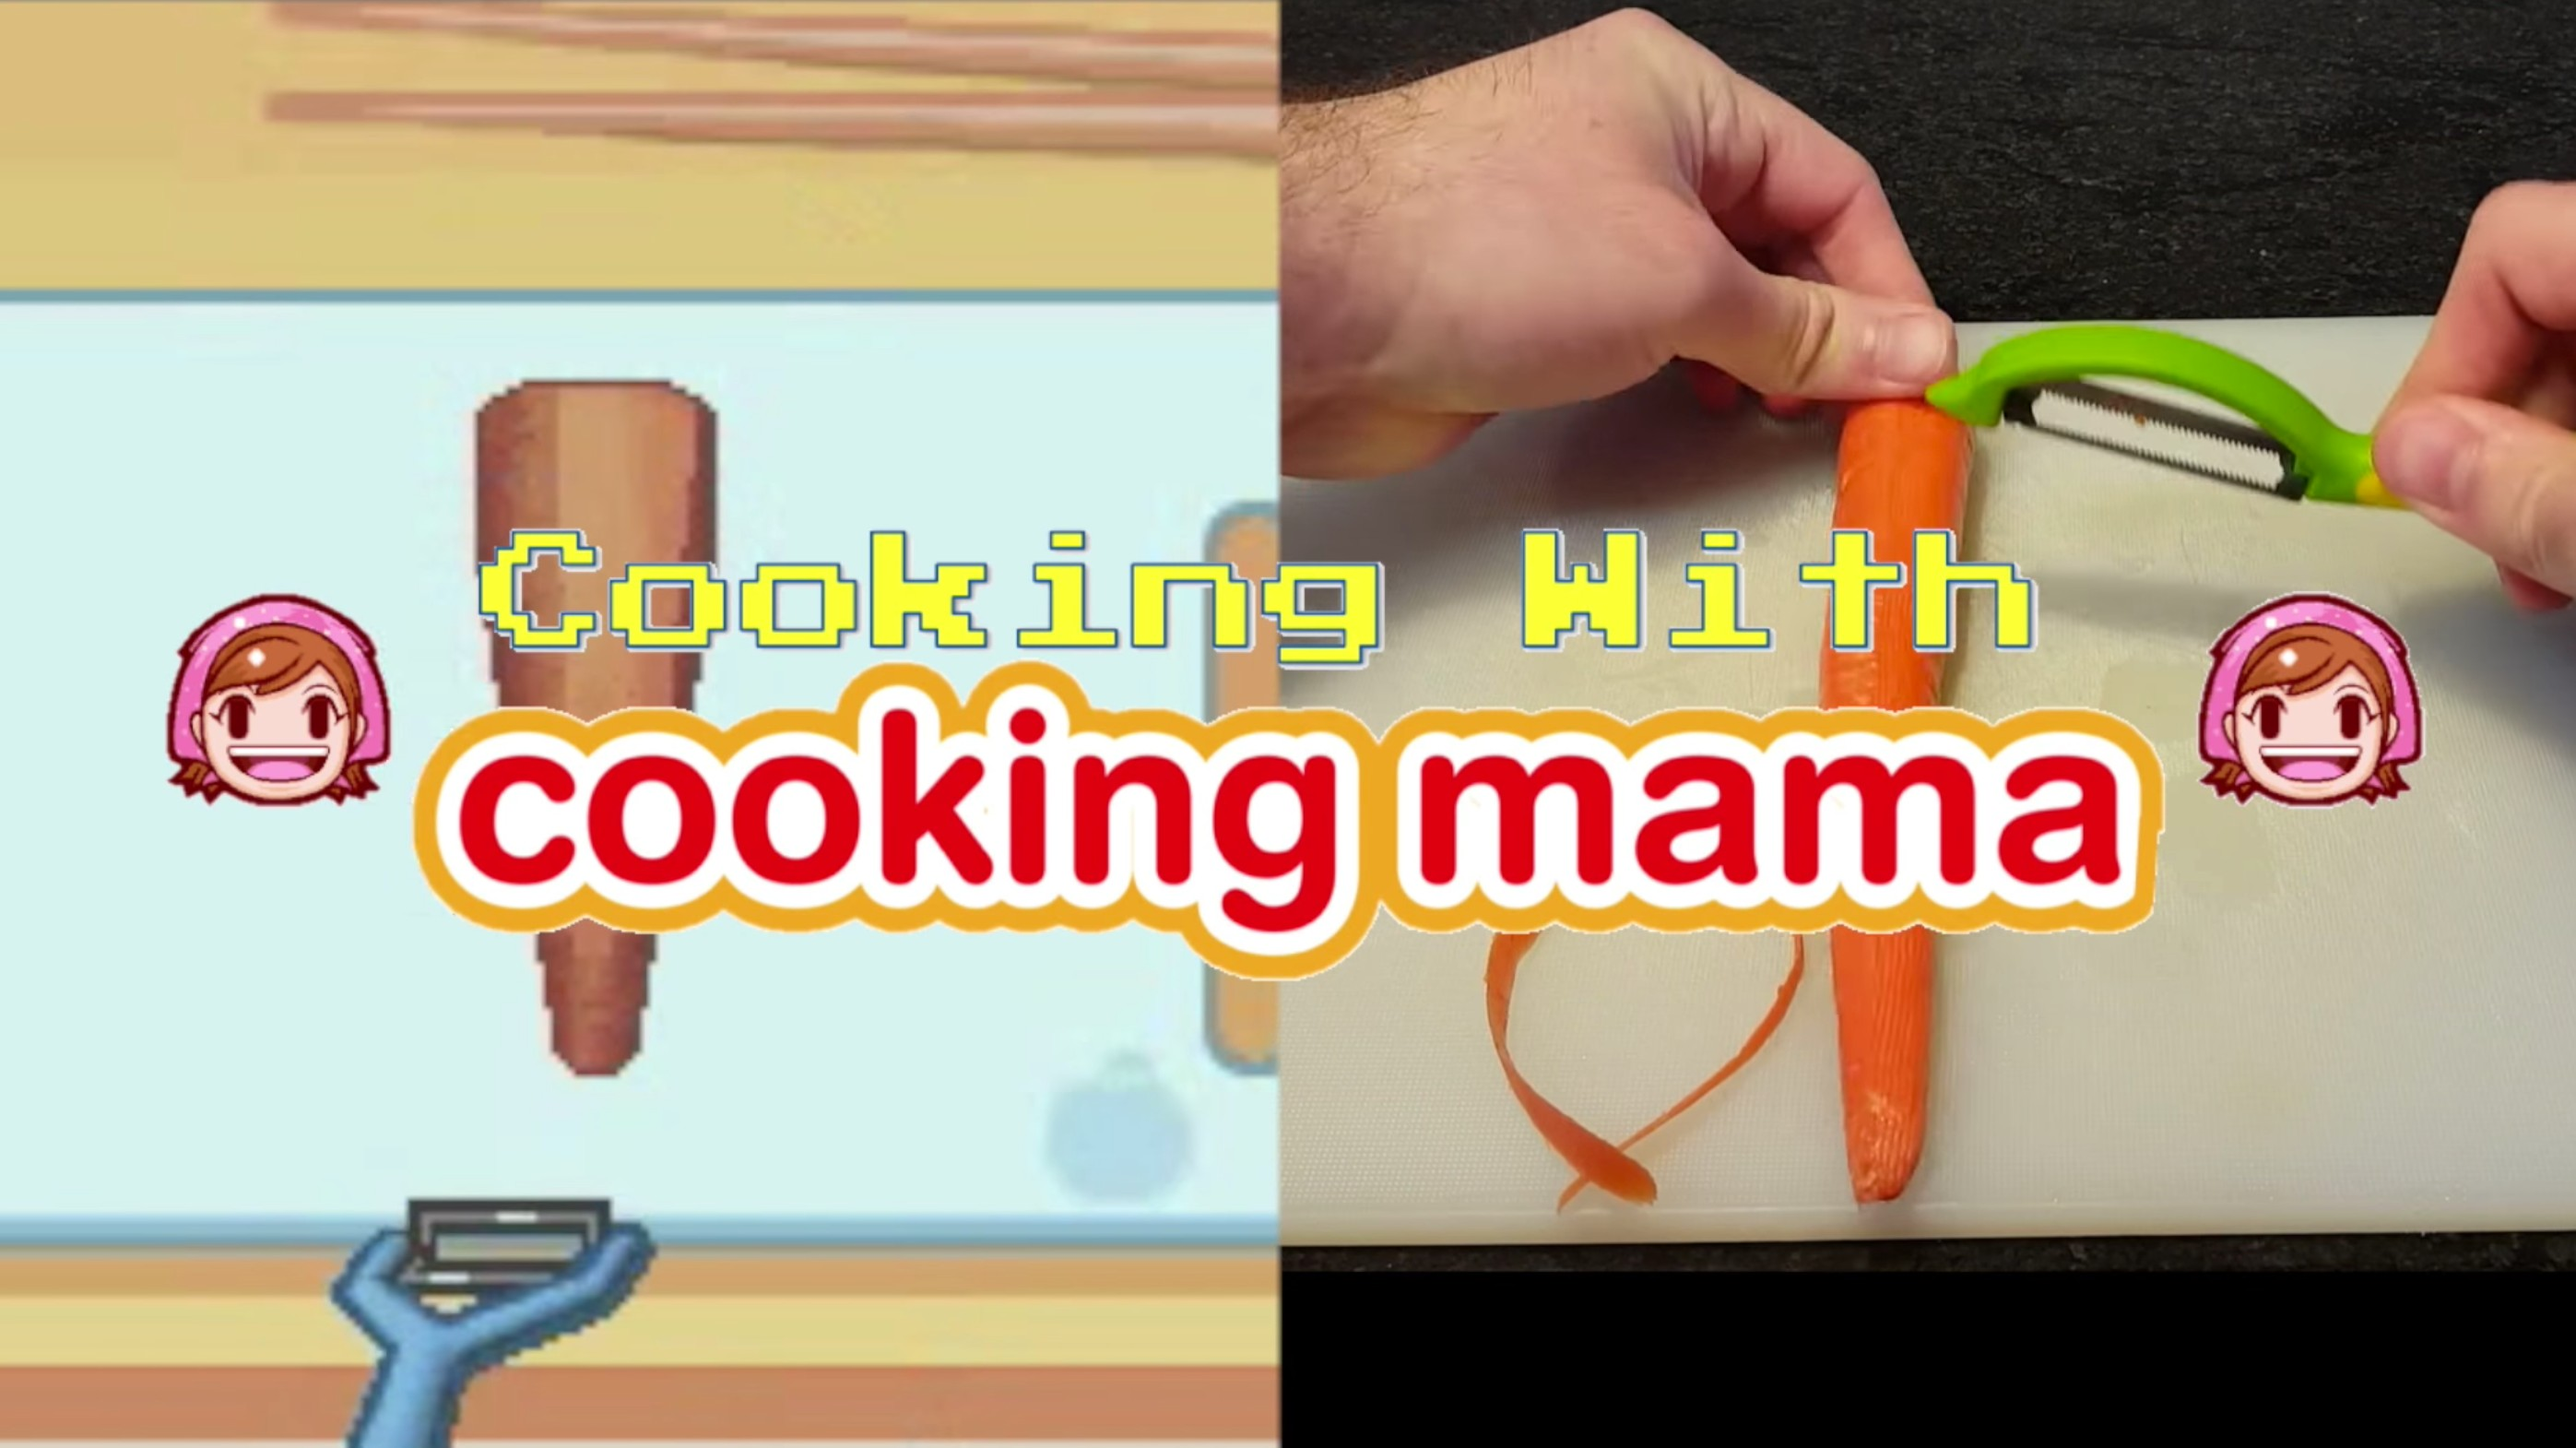 This Guy Is Putting Cooking Mama's Recipes to the Test - VICE